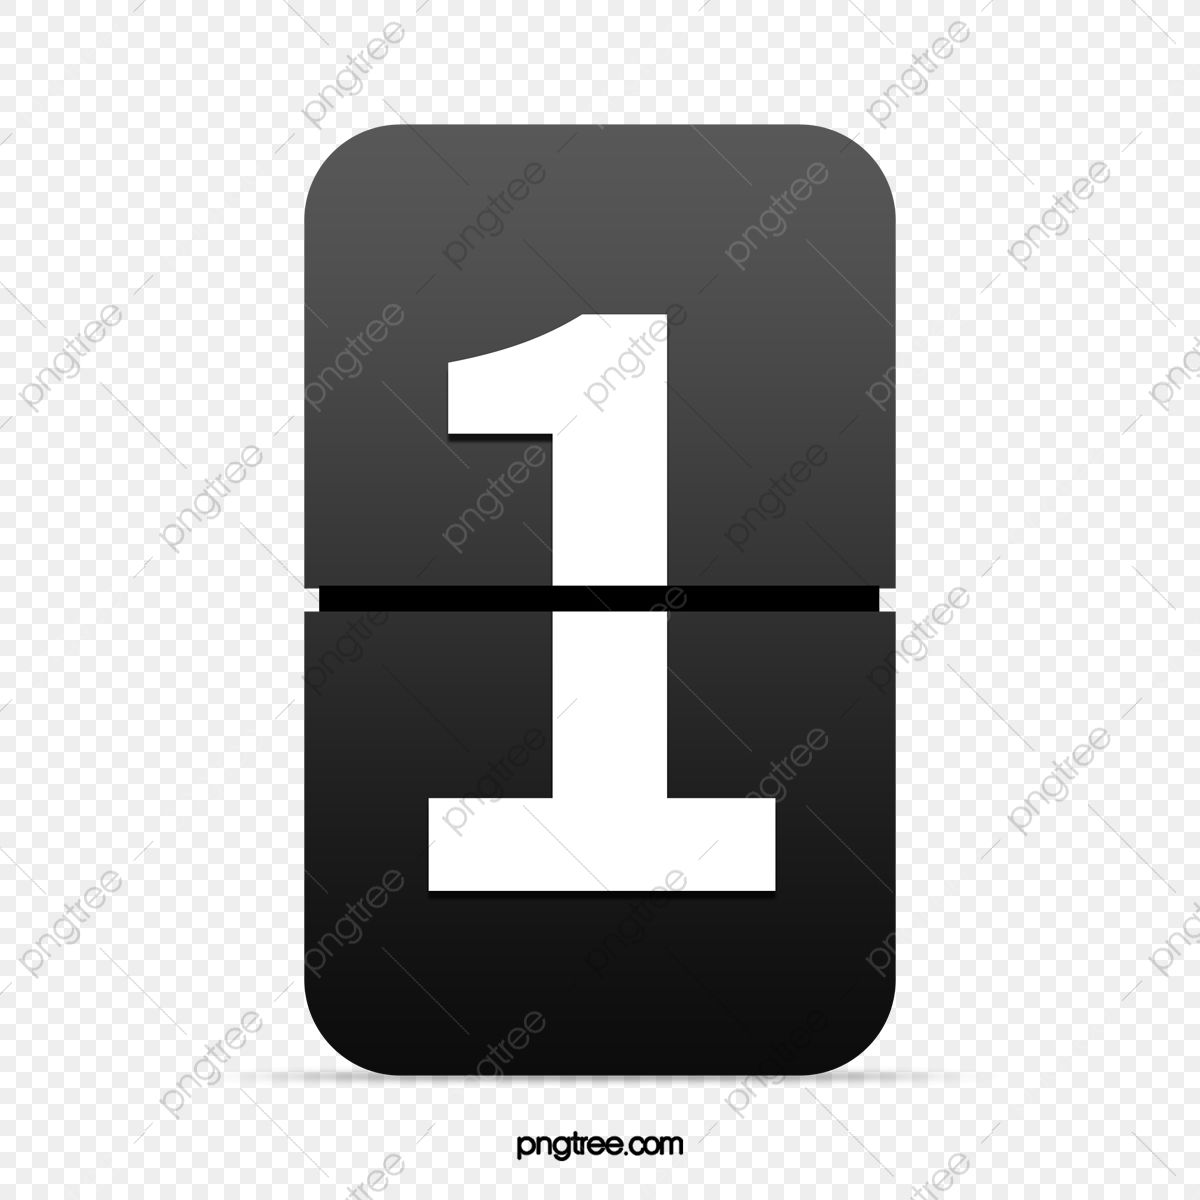 Flop Number 1 Number Countdown Digital Png Transparent Clipart Image And Psd File For Free Download Clip Art Prints For Sale Countdown